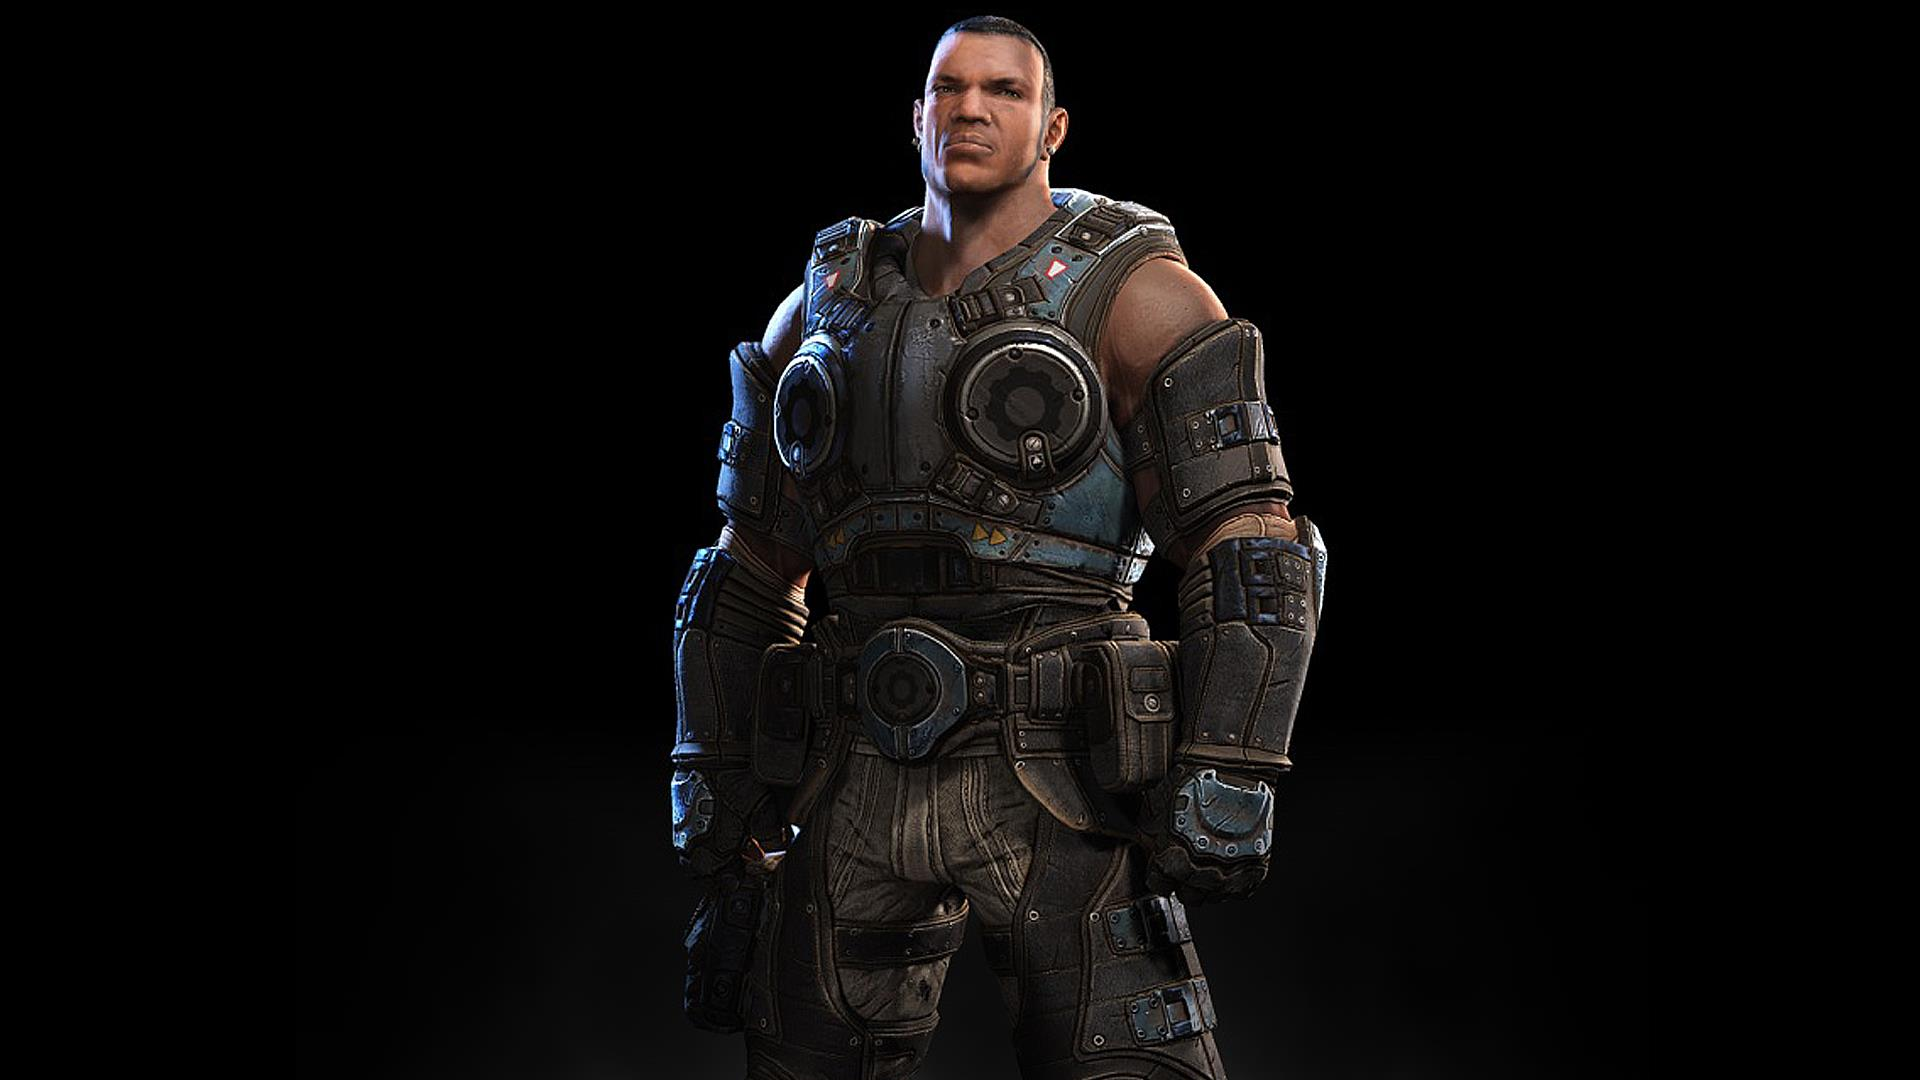 the Collection Gears Of War Video Game Gears Of War Judgment 268930 1920x1080